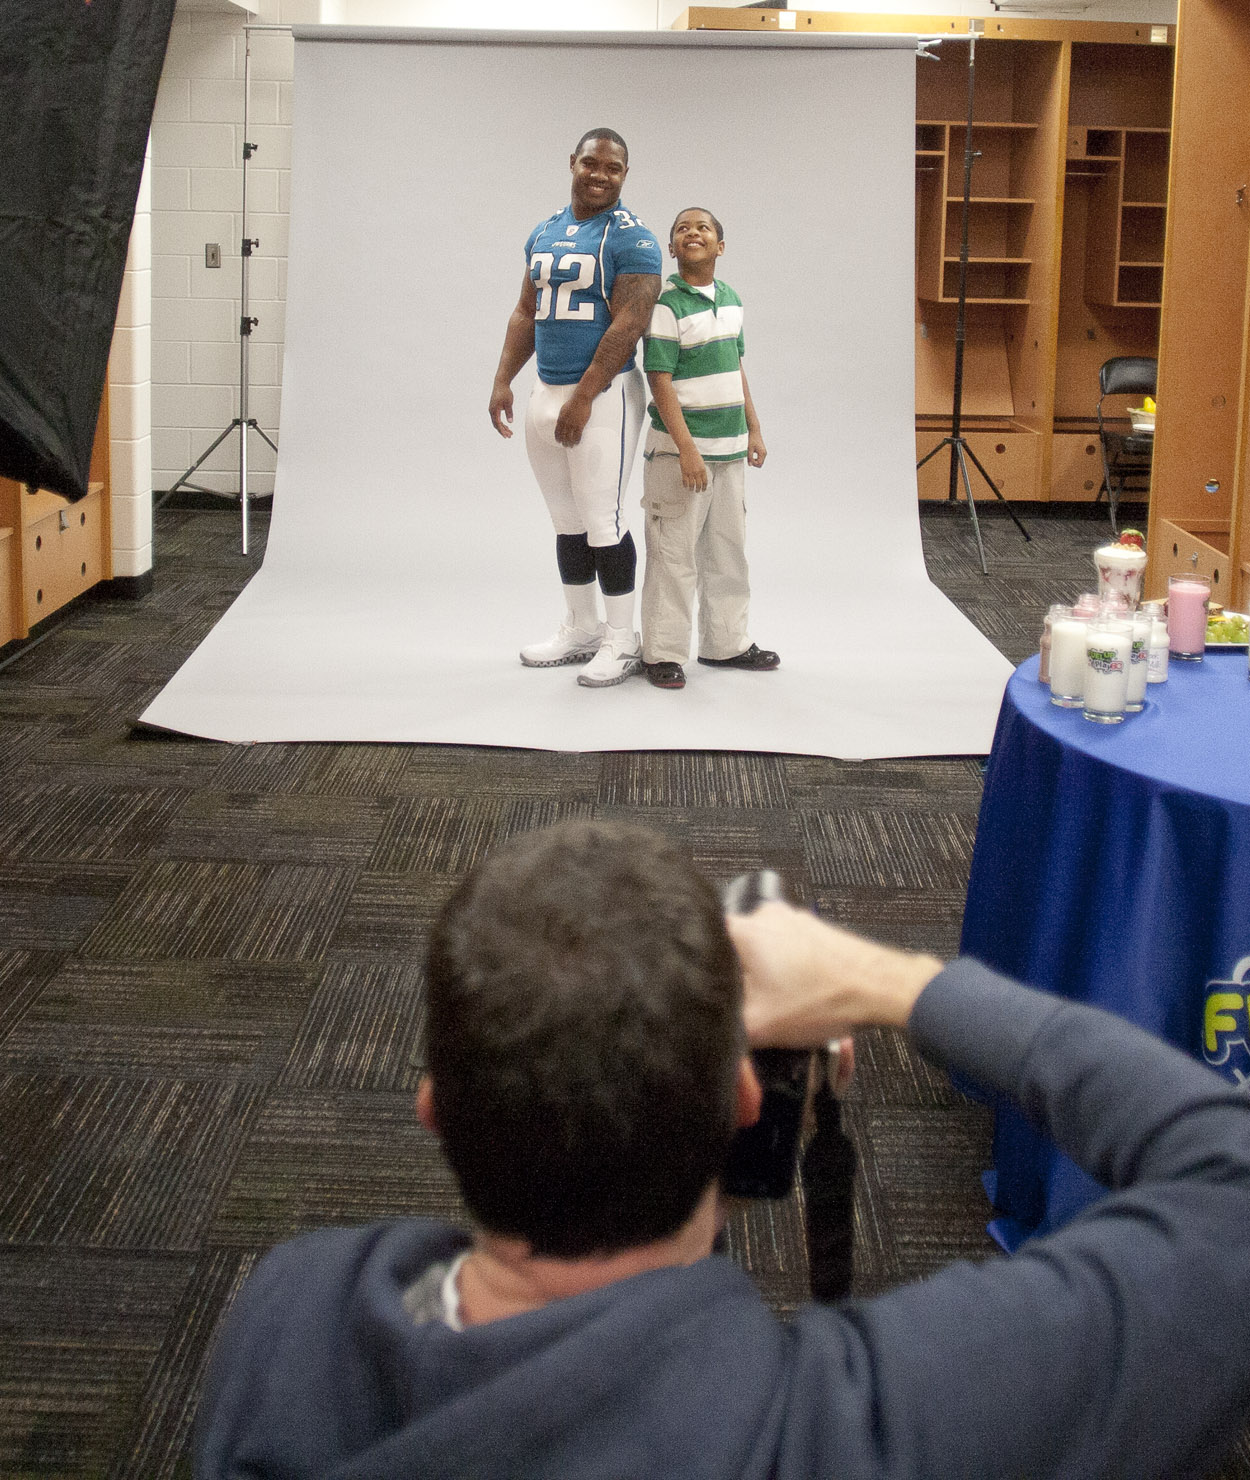 Behind the scenes with Maurice Jones-Drew for Play 60 / Milk campaign shoot.